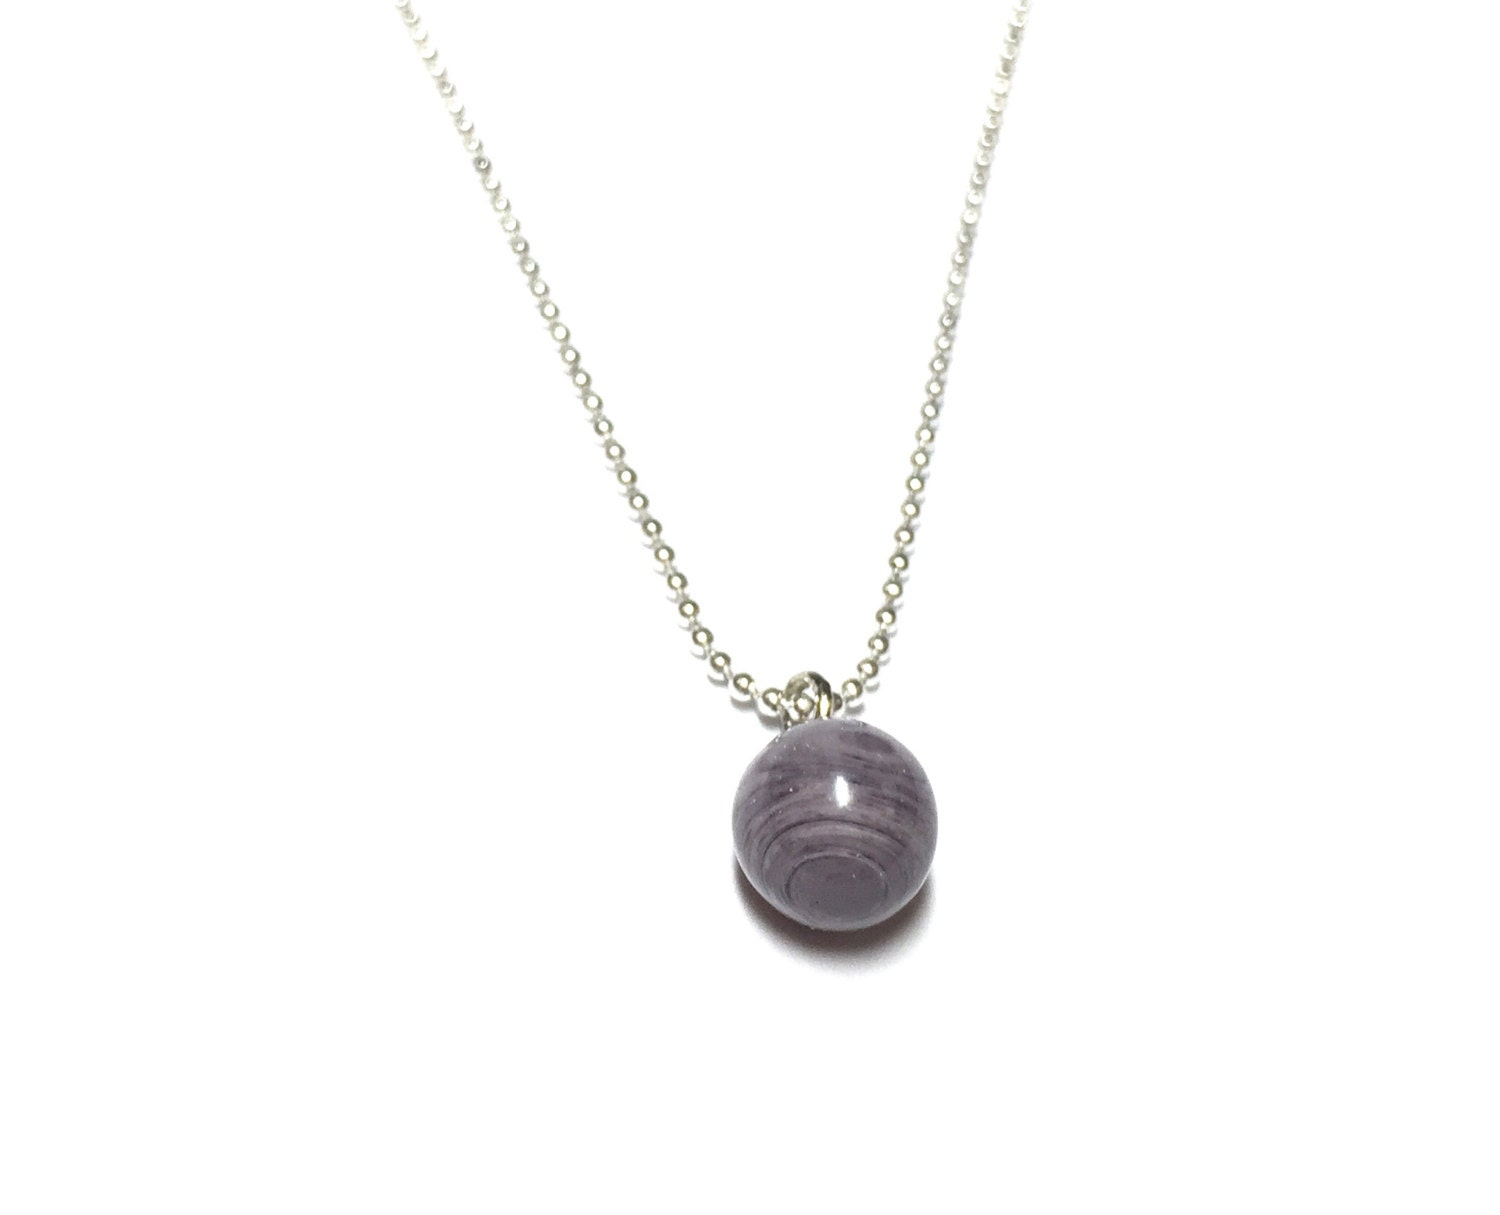 Grey Marbled Drop Necklace Simple Ball Chain Necklace